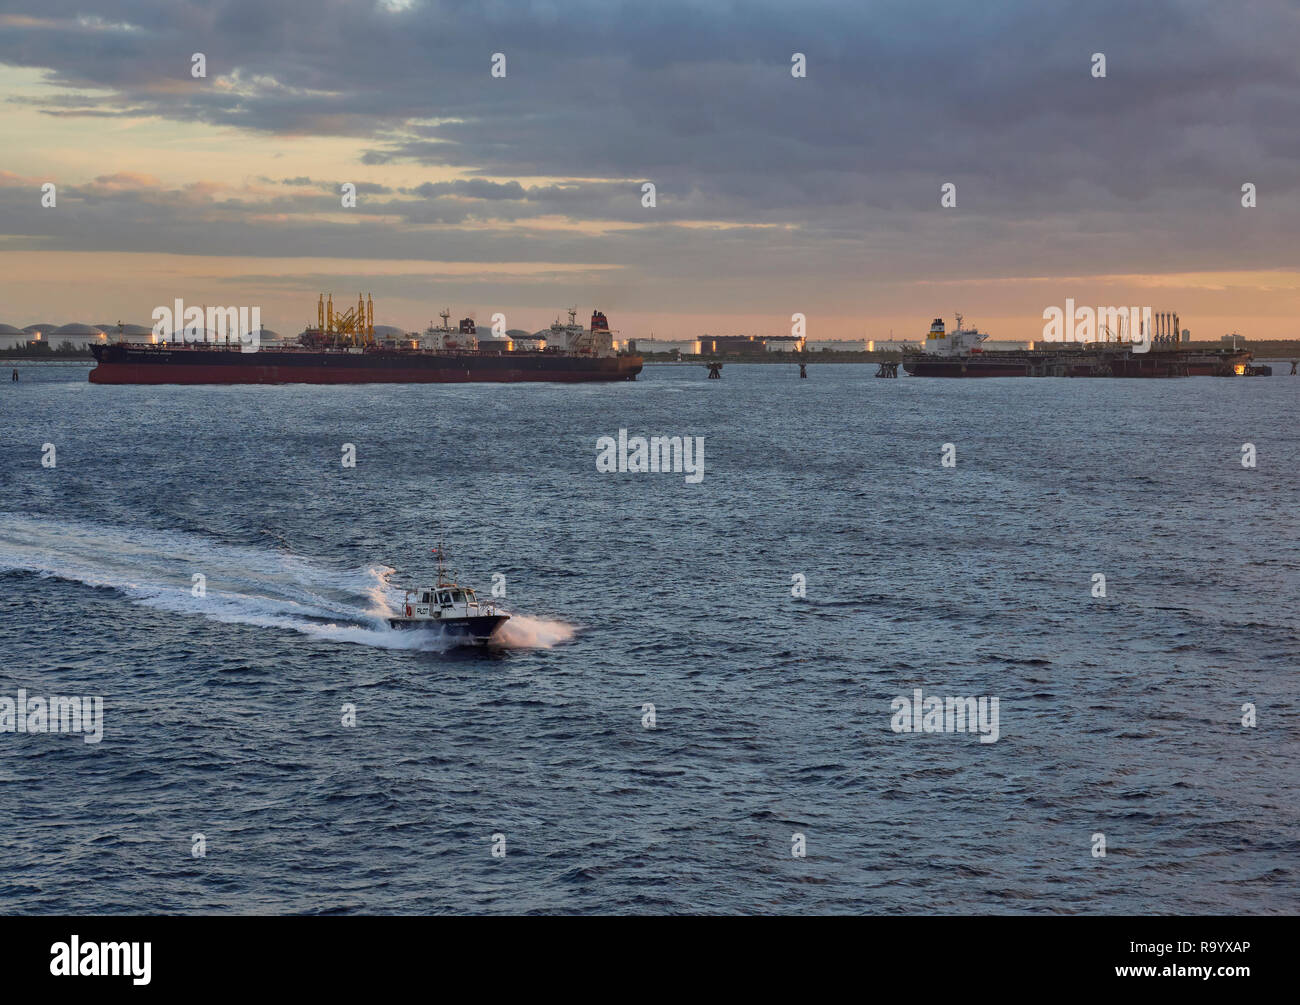 The Pilot Boat passing the Offshore Jetties and coming out to a Vessel at the Anchorage in Freeport, Grand Bahama in the Caribbean - Stock Image